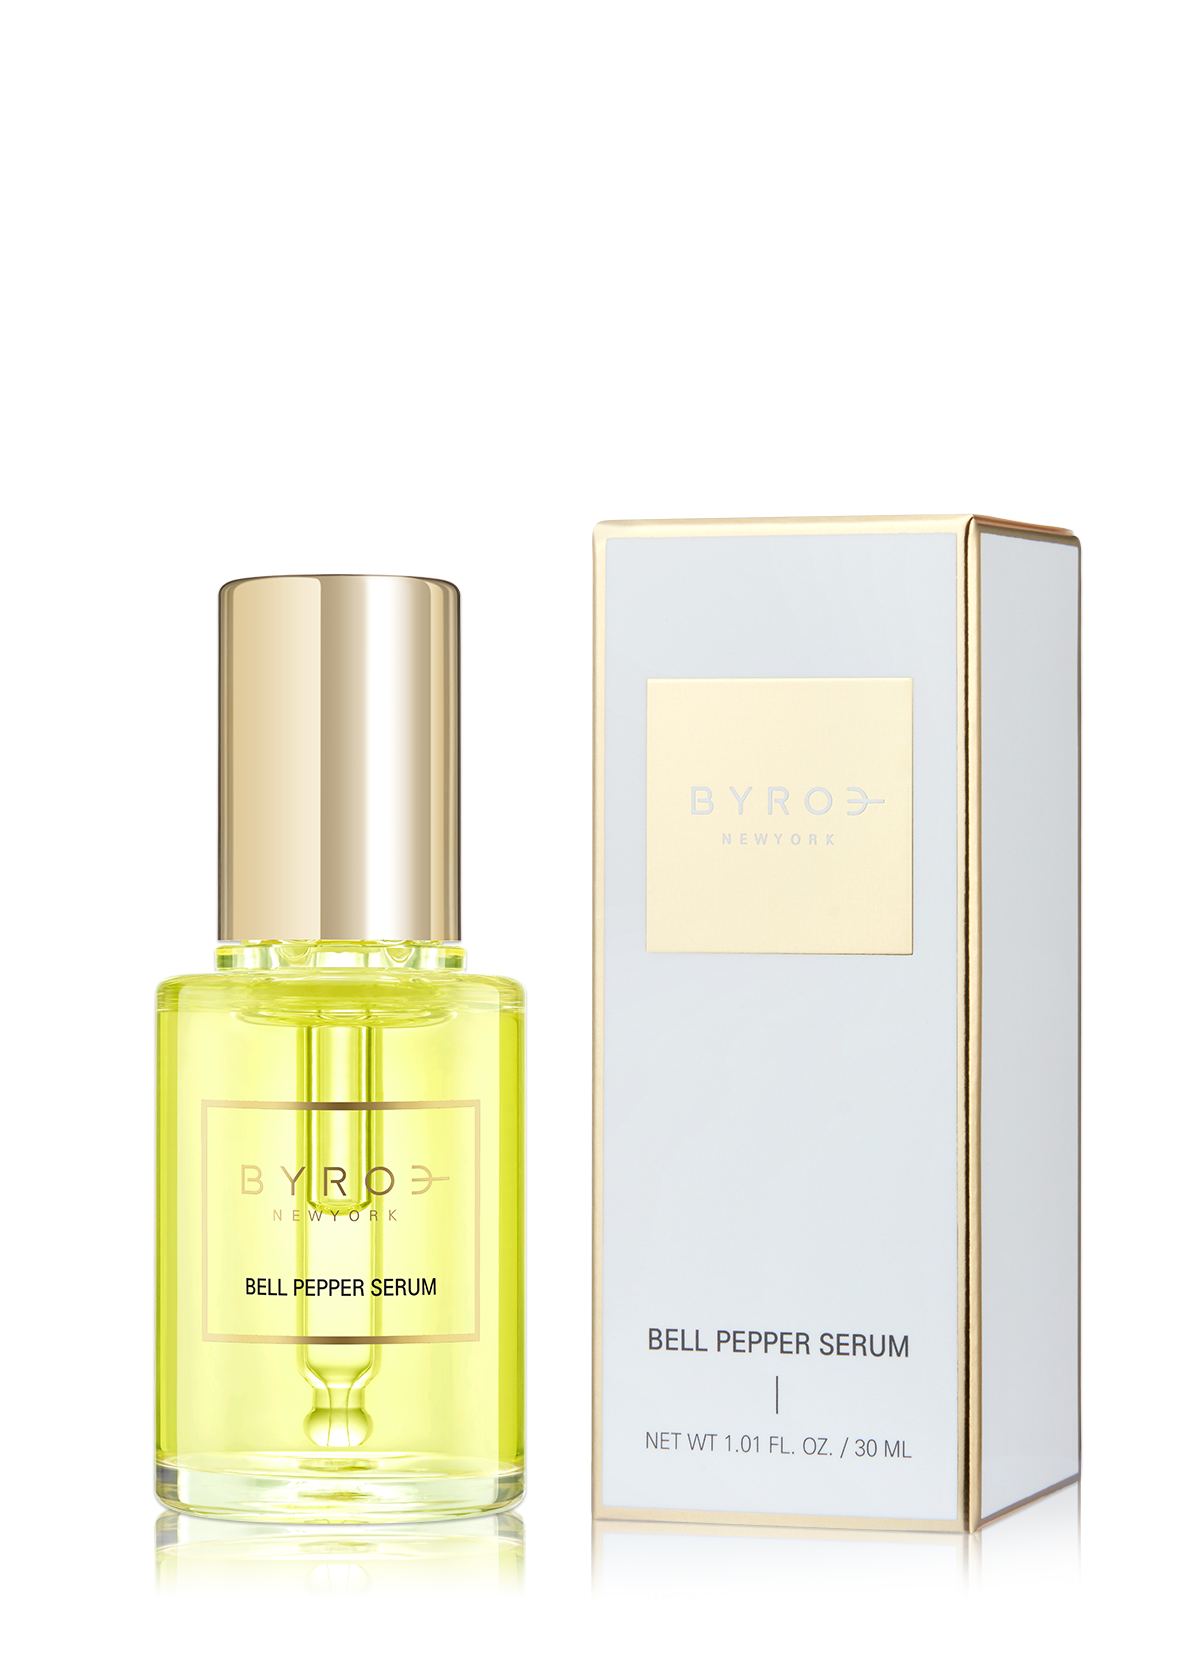 BELL PEPPER SERUM